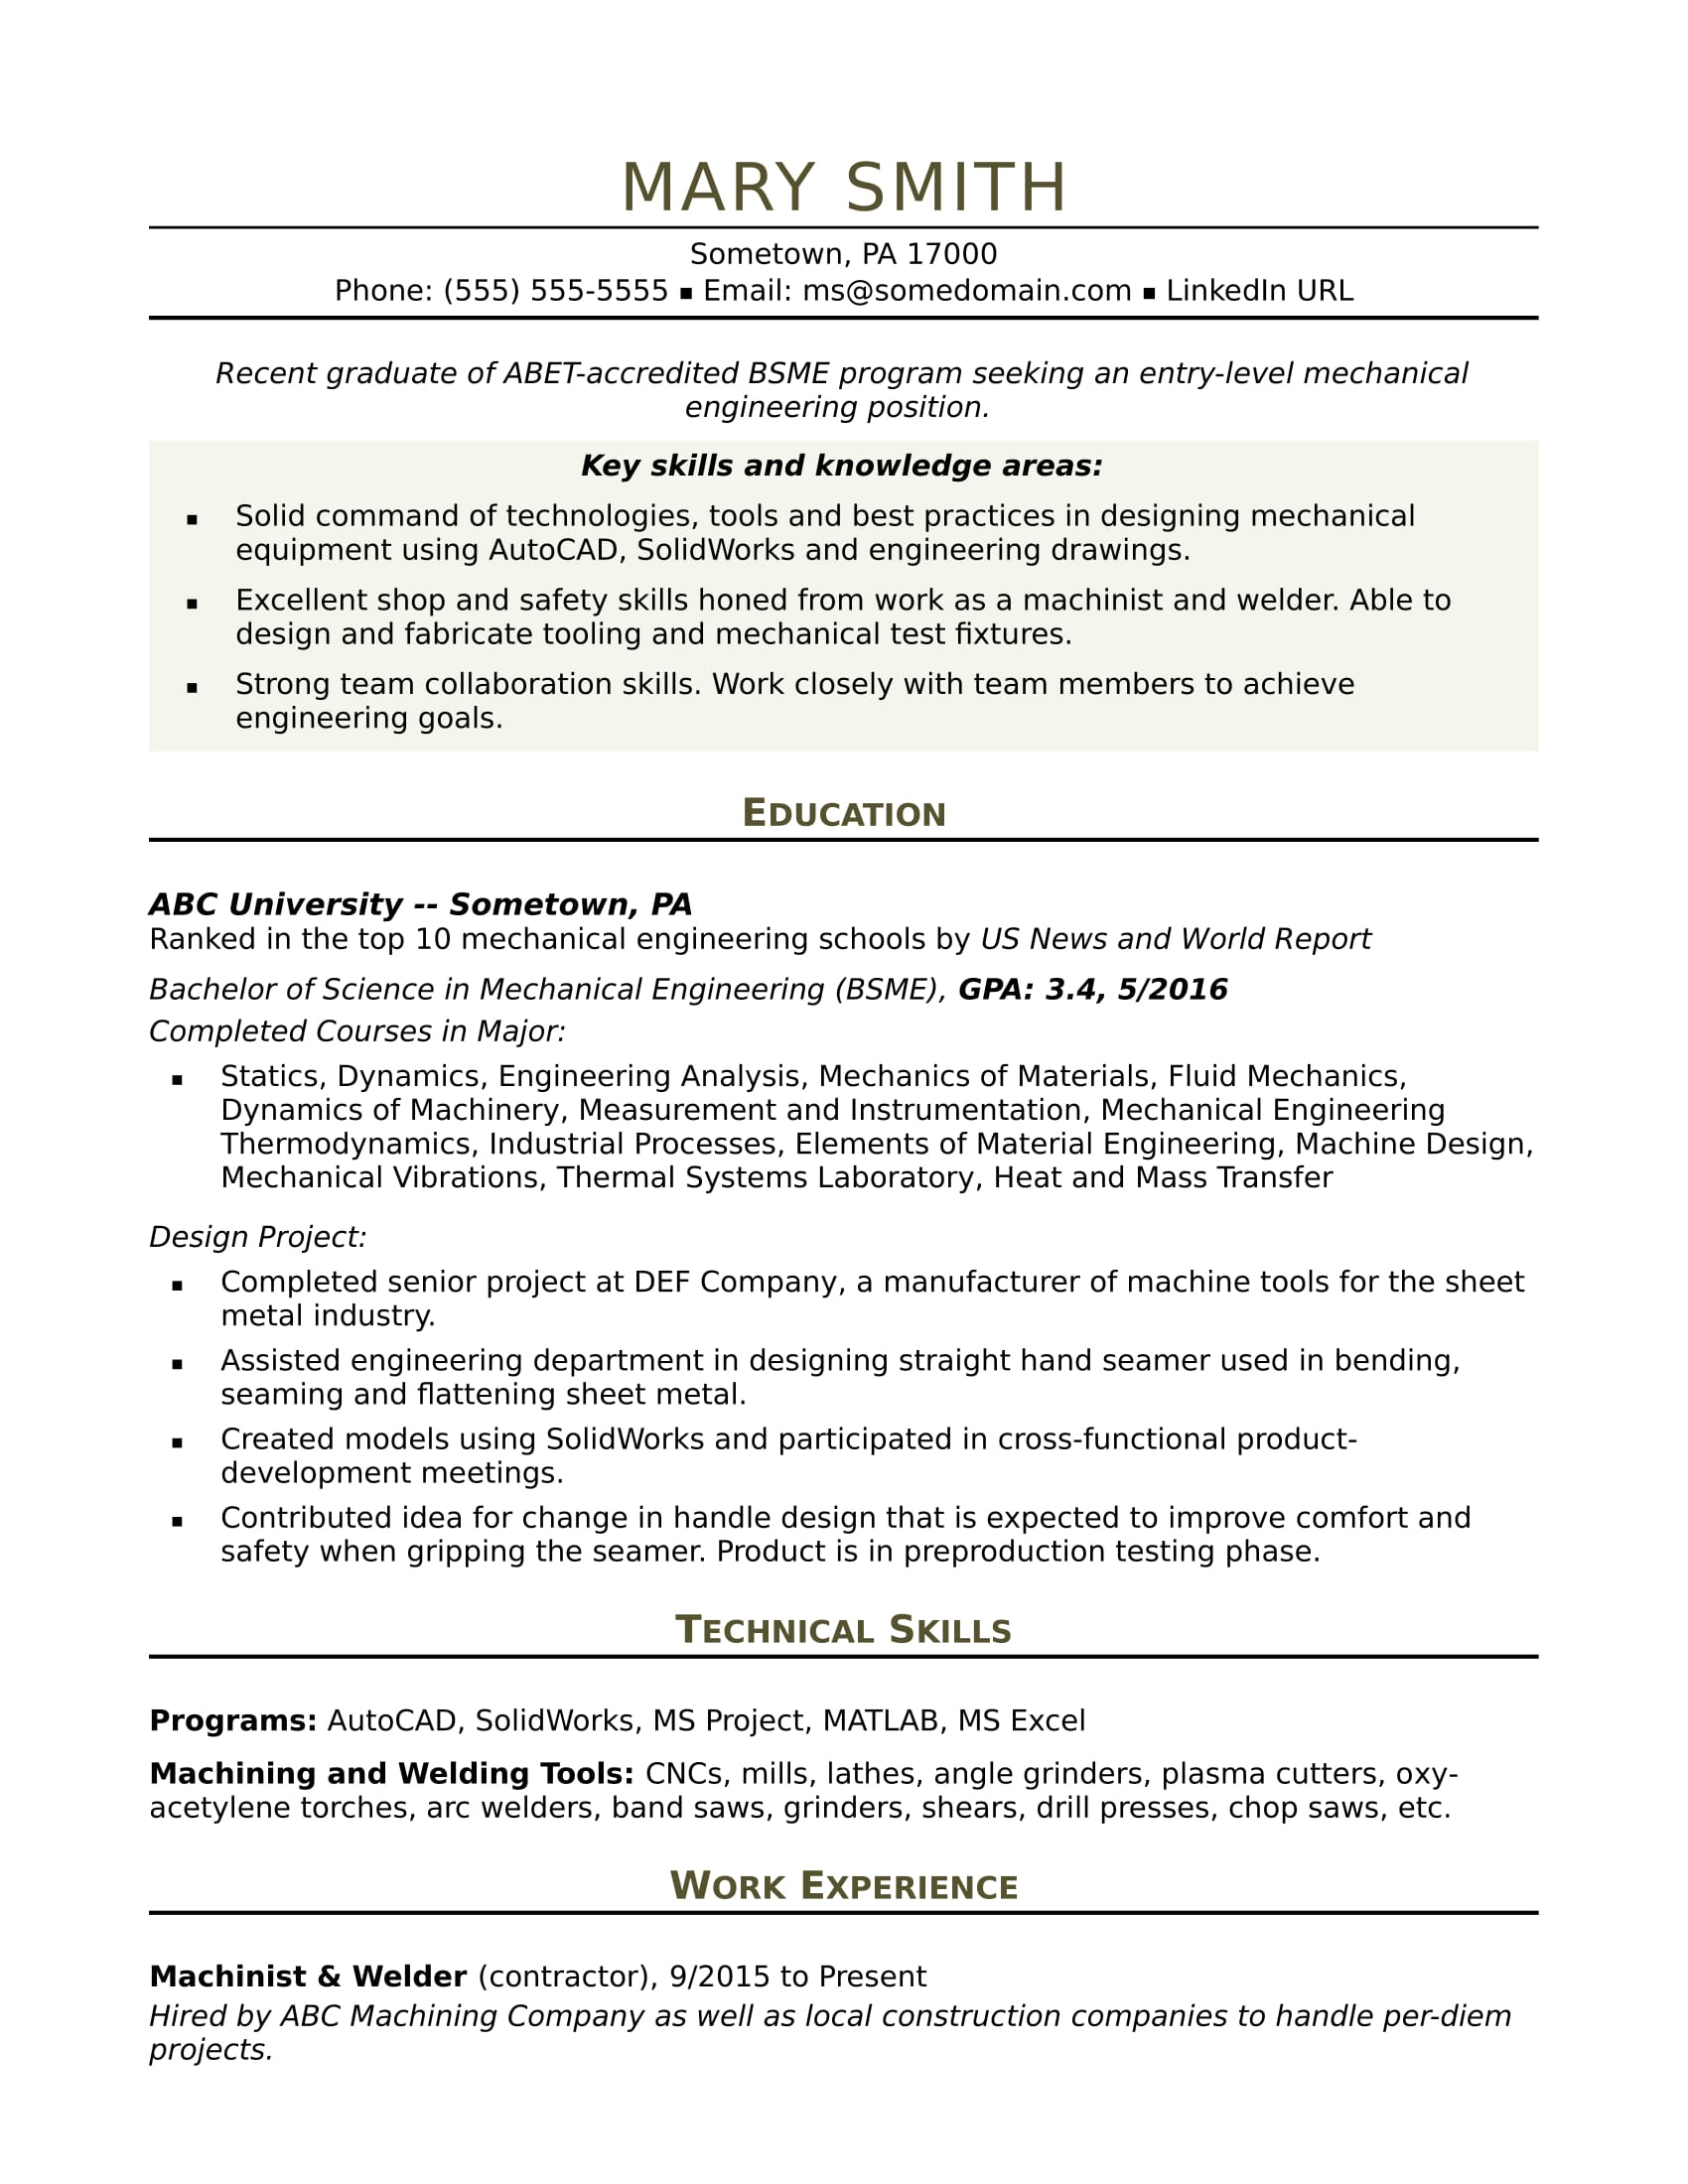 sample resume for an entry level mechanical engineer monster spring boot save company Resume Mechanical Engineer Resume Sample